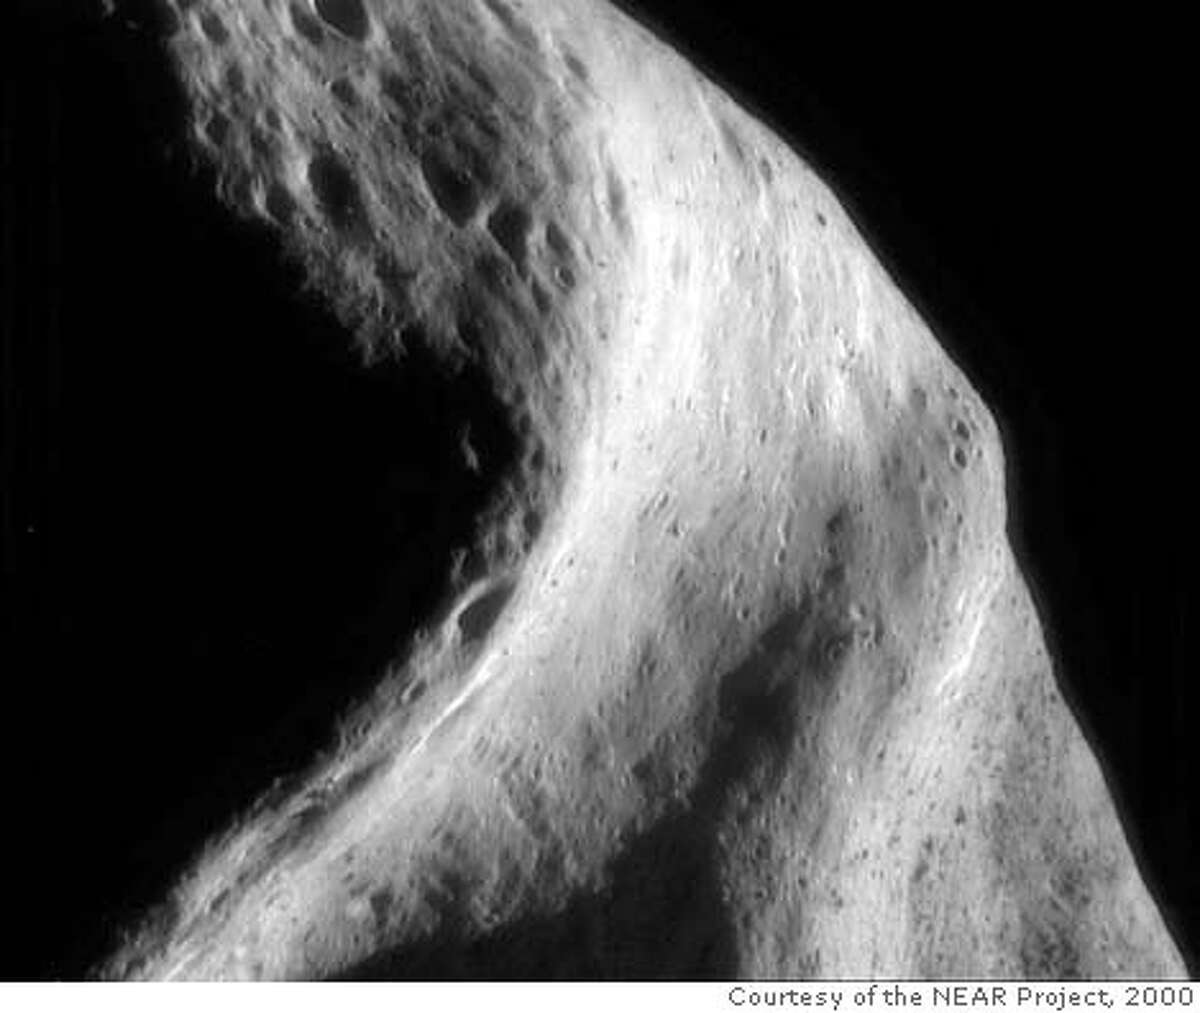 The South Saddle NEAR Shoemaker's current 100-kilometer (62-mile) orbit gives it a bird's eye view of the asteroid. From this distance, only a handful of pictures are needed to create an image mosaic of a large area. This mosaic of four frames, photographed on September 26, 2000, was taken as the spacecraft looked down on the